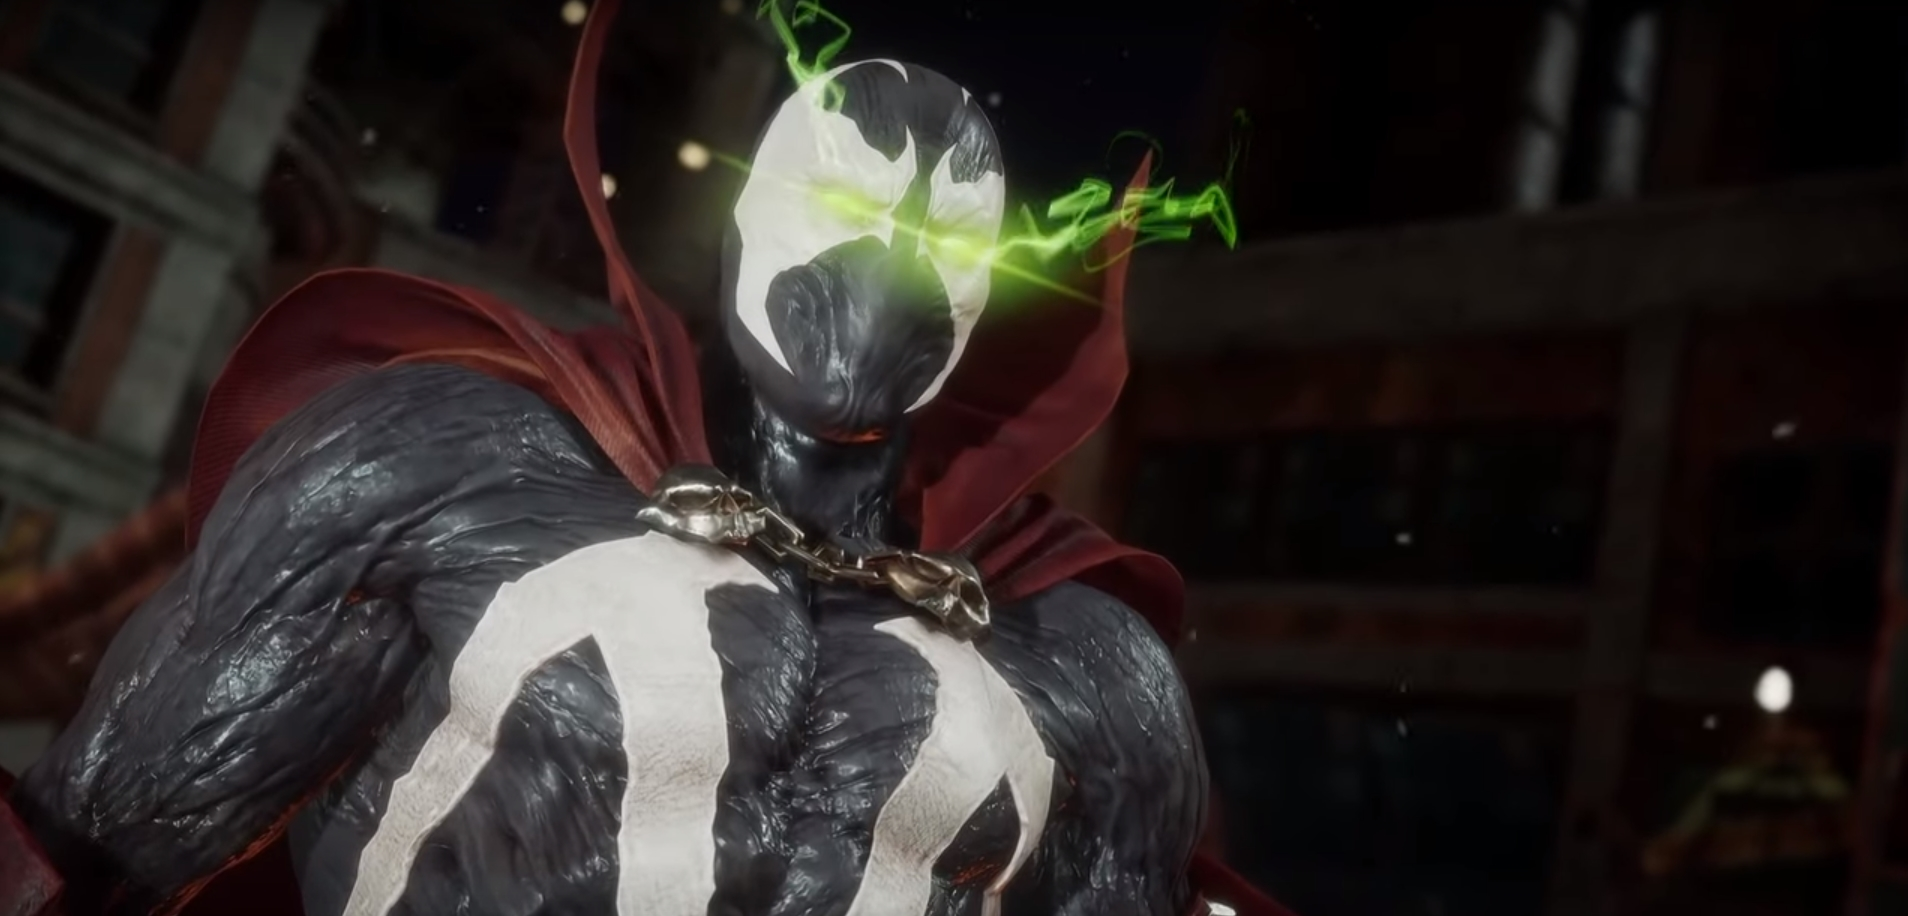 Mortal Kombat 11 Releases New Trailer For Upcoming DLC Fighter, Spawn